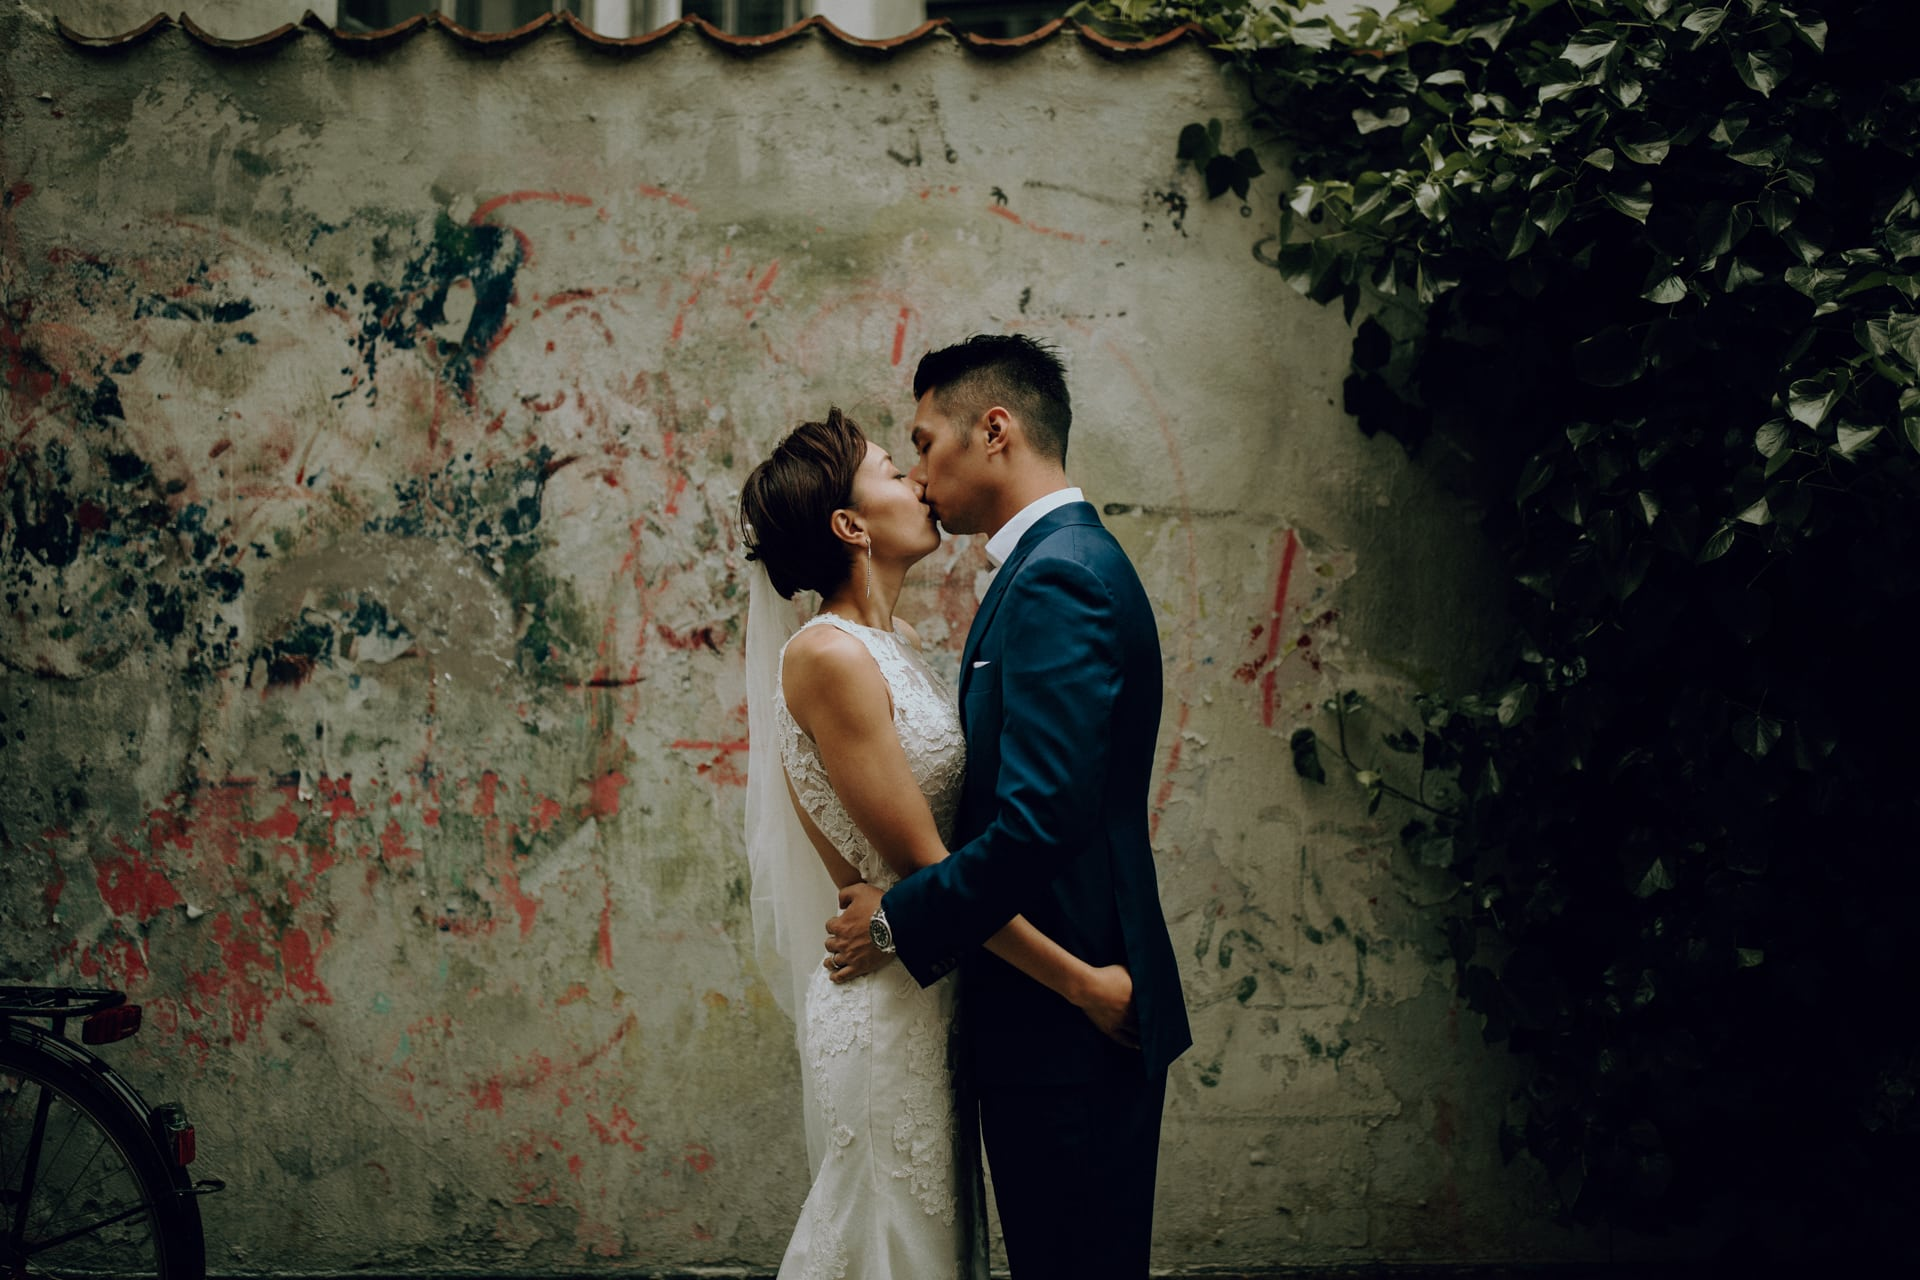 The wedding couple is kissing each other in front of an old wall.